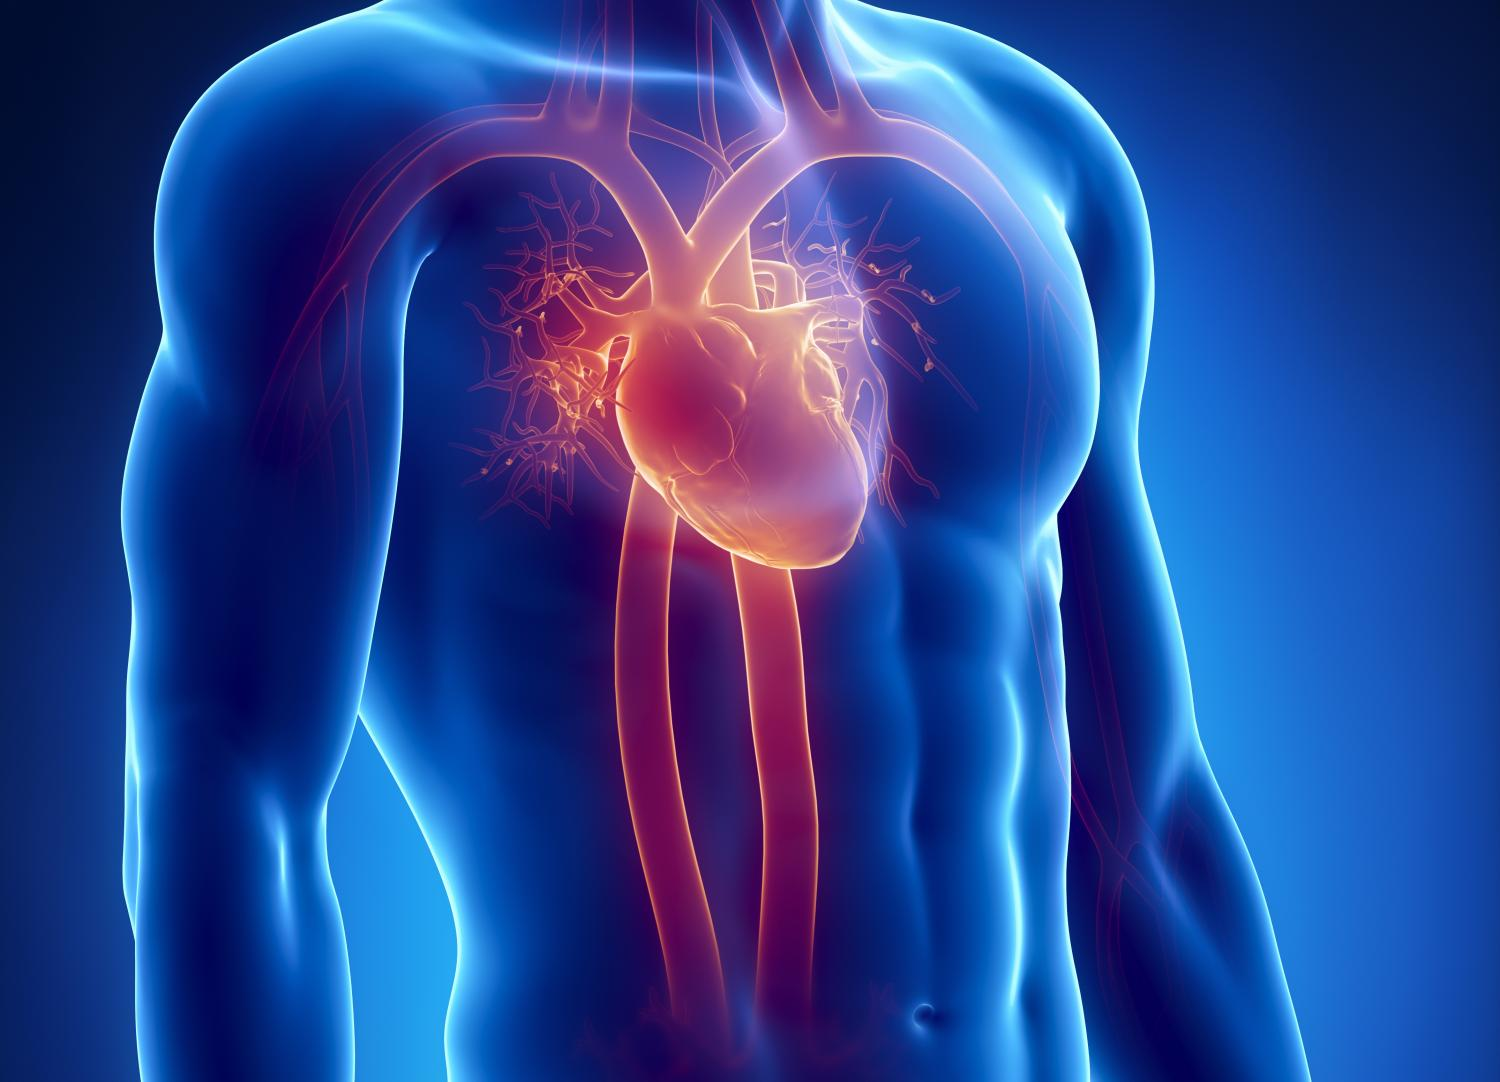 heart attack shown to be systemic condition Broken Heart heart attack shown to be systemic condition other ans also affected credit medical university of vienna